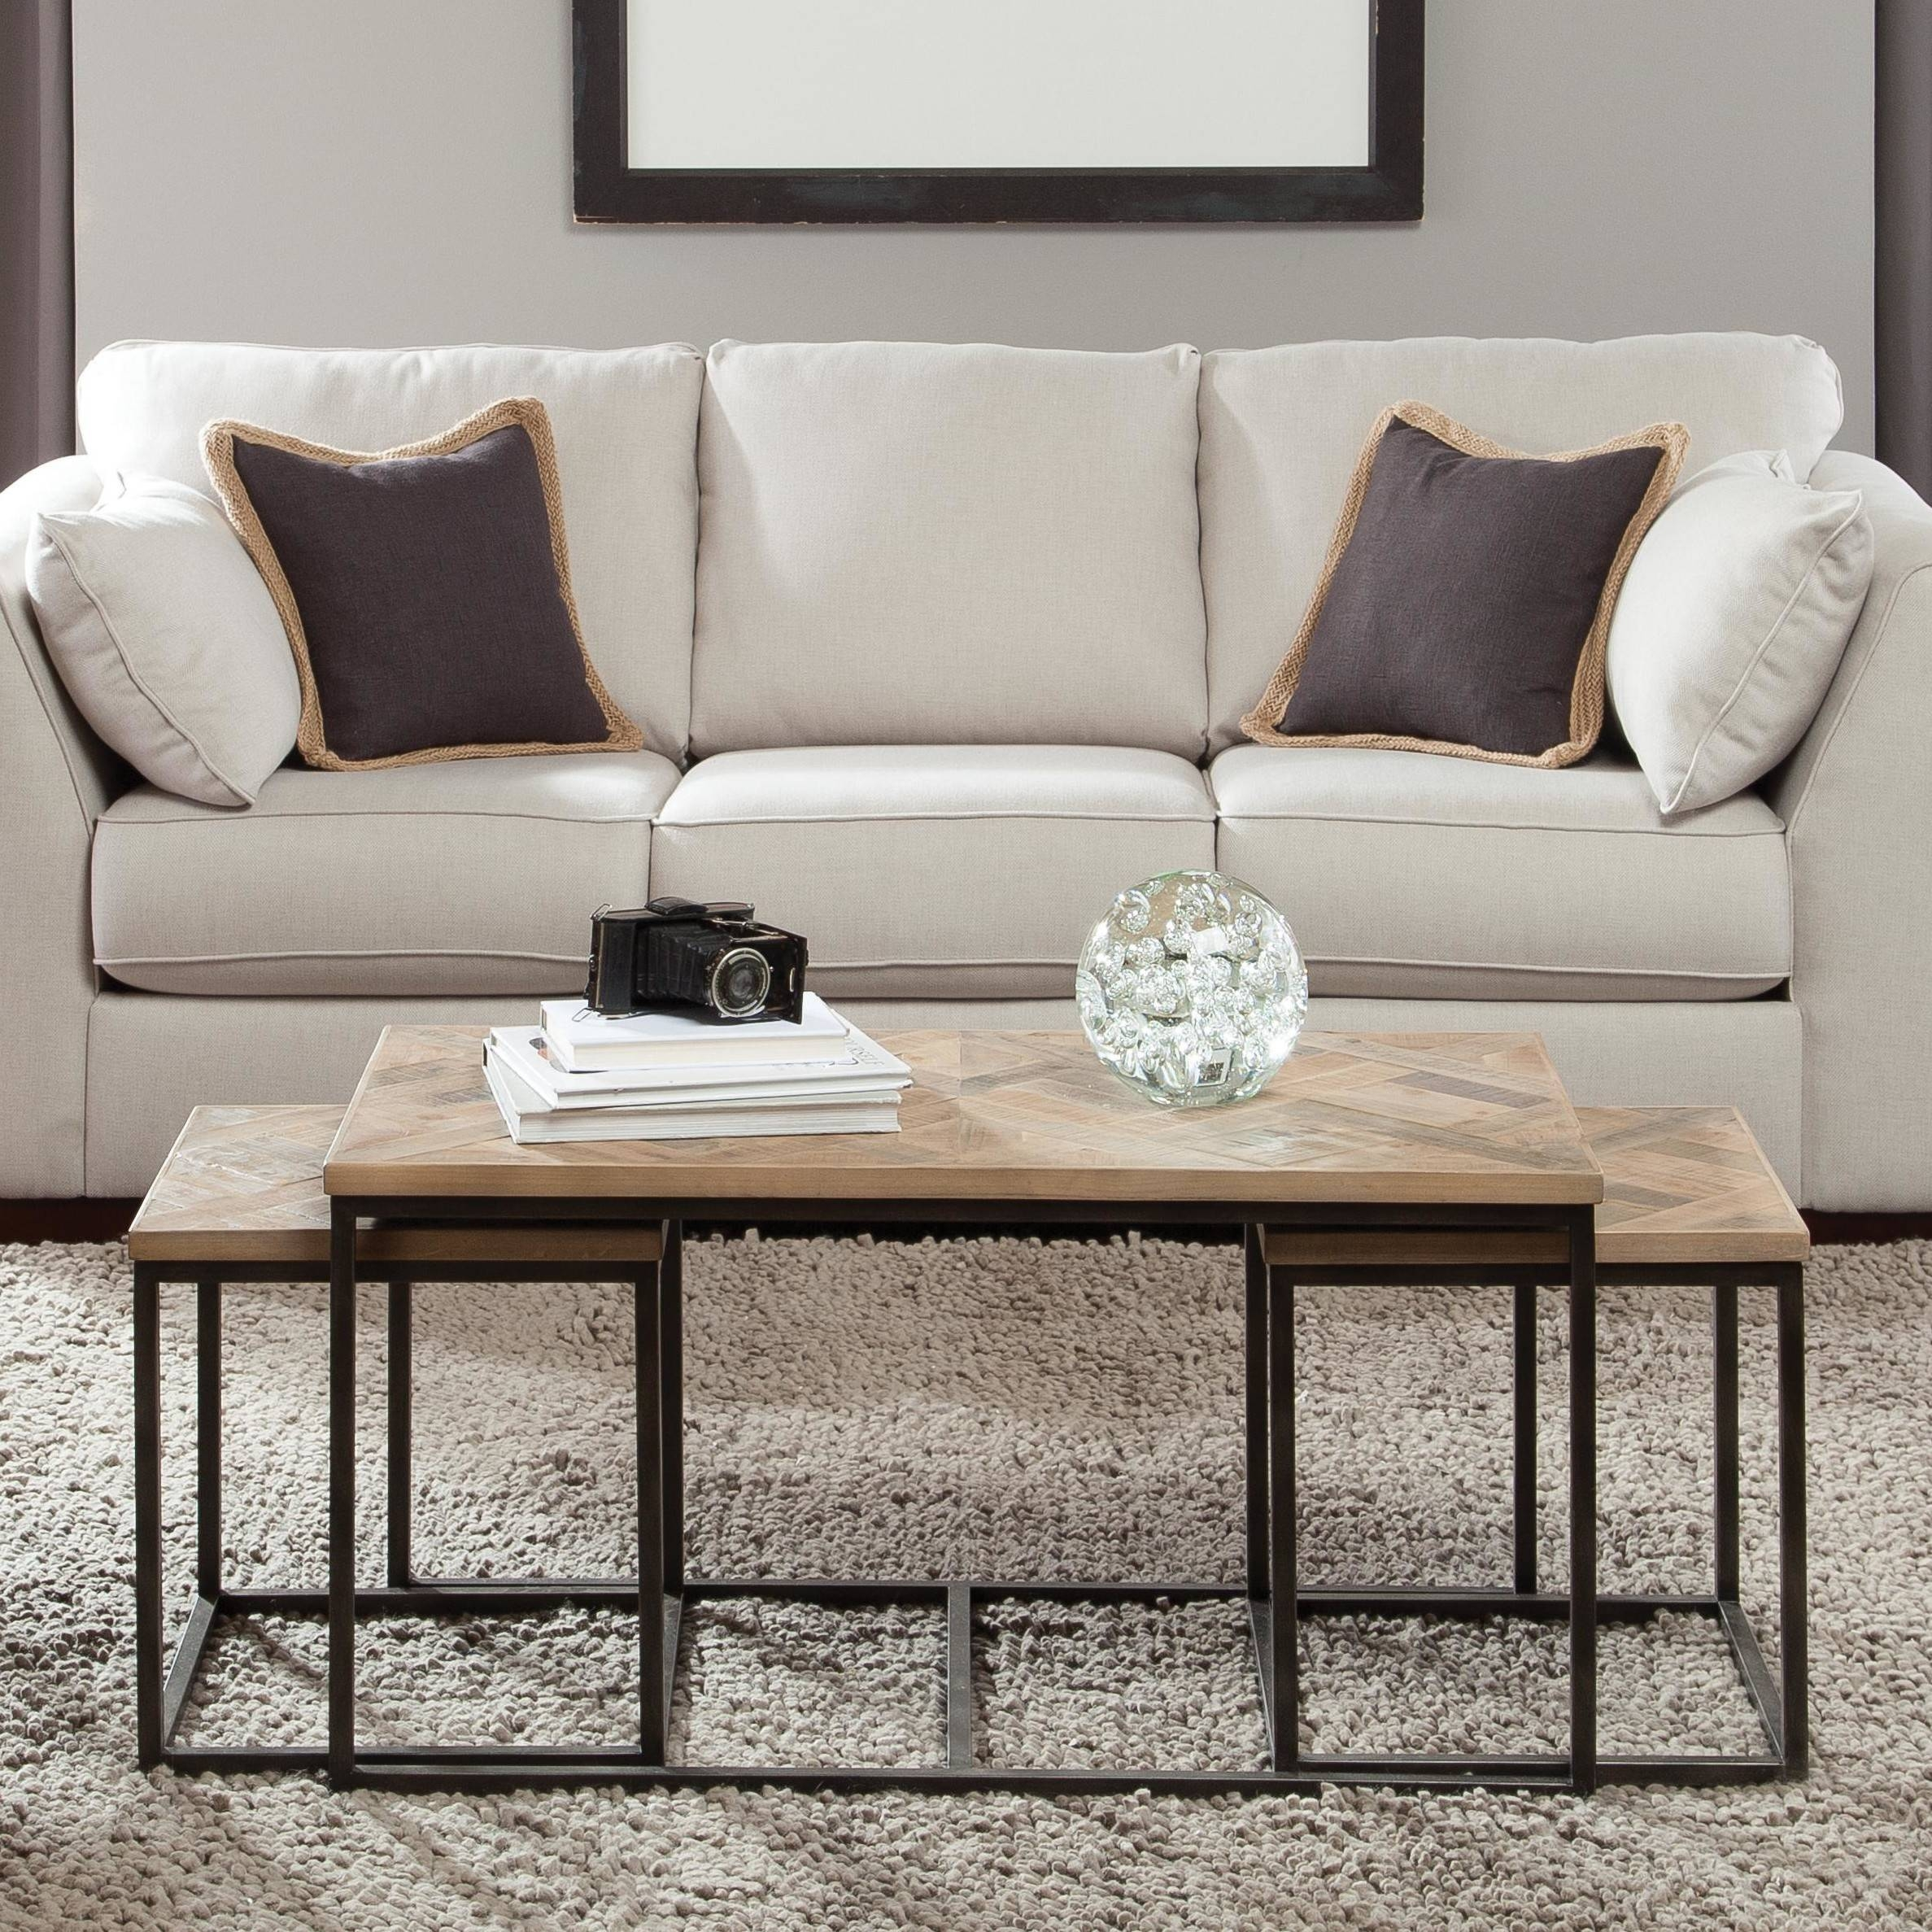 Furniture: Bunching Coffee Tables And Nesting Coffee Table Also intended for Odd Shaped Coffee Tables (Image 21 of 30)